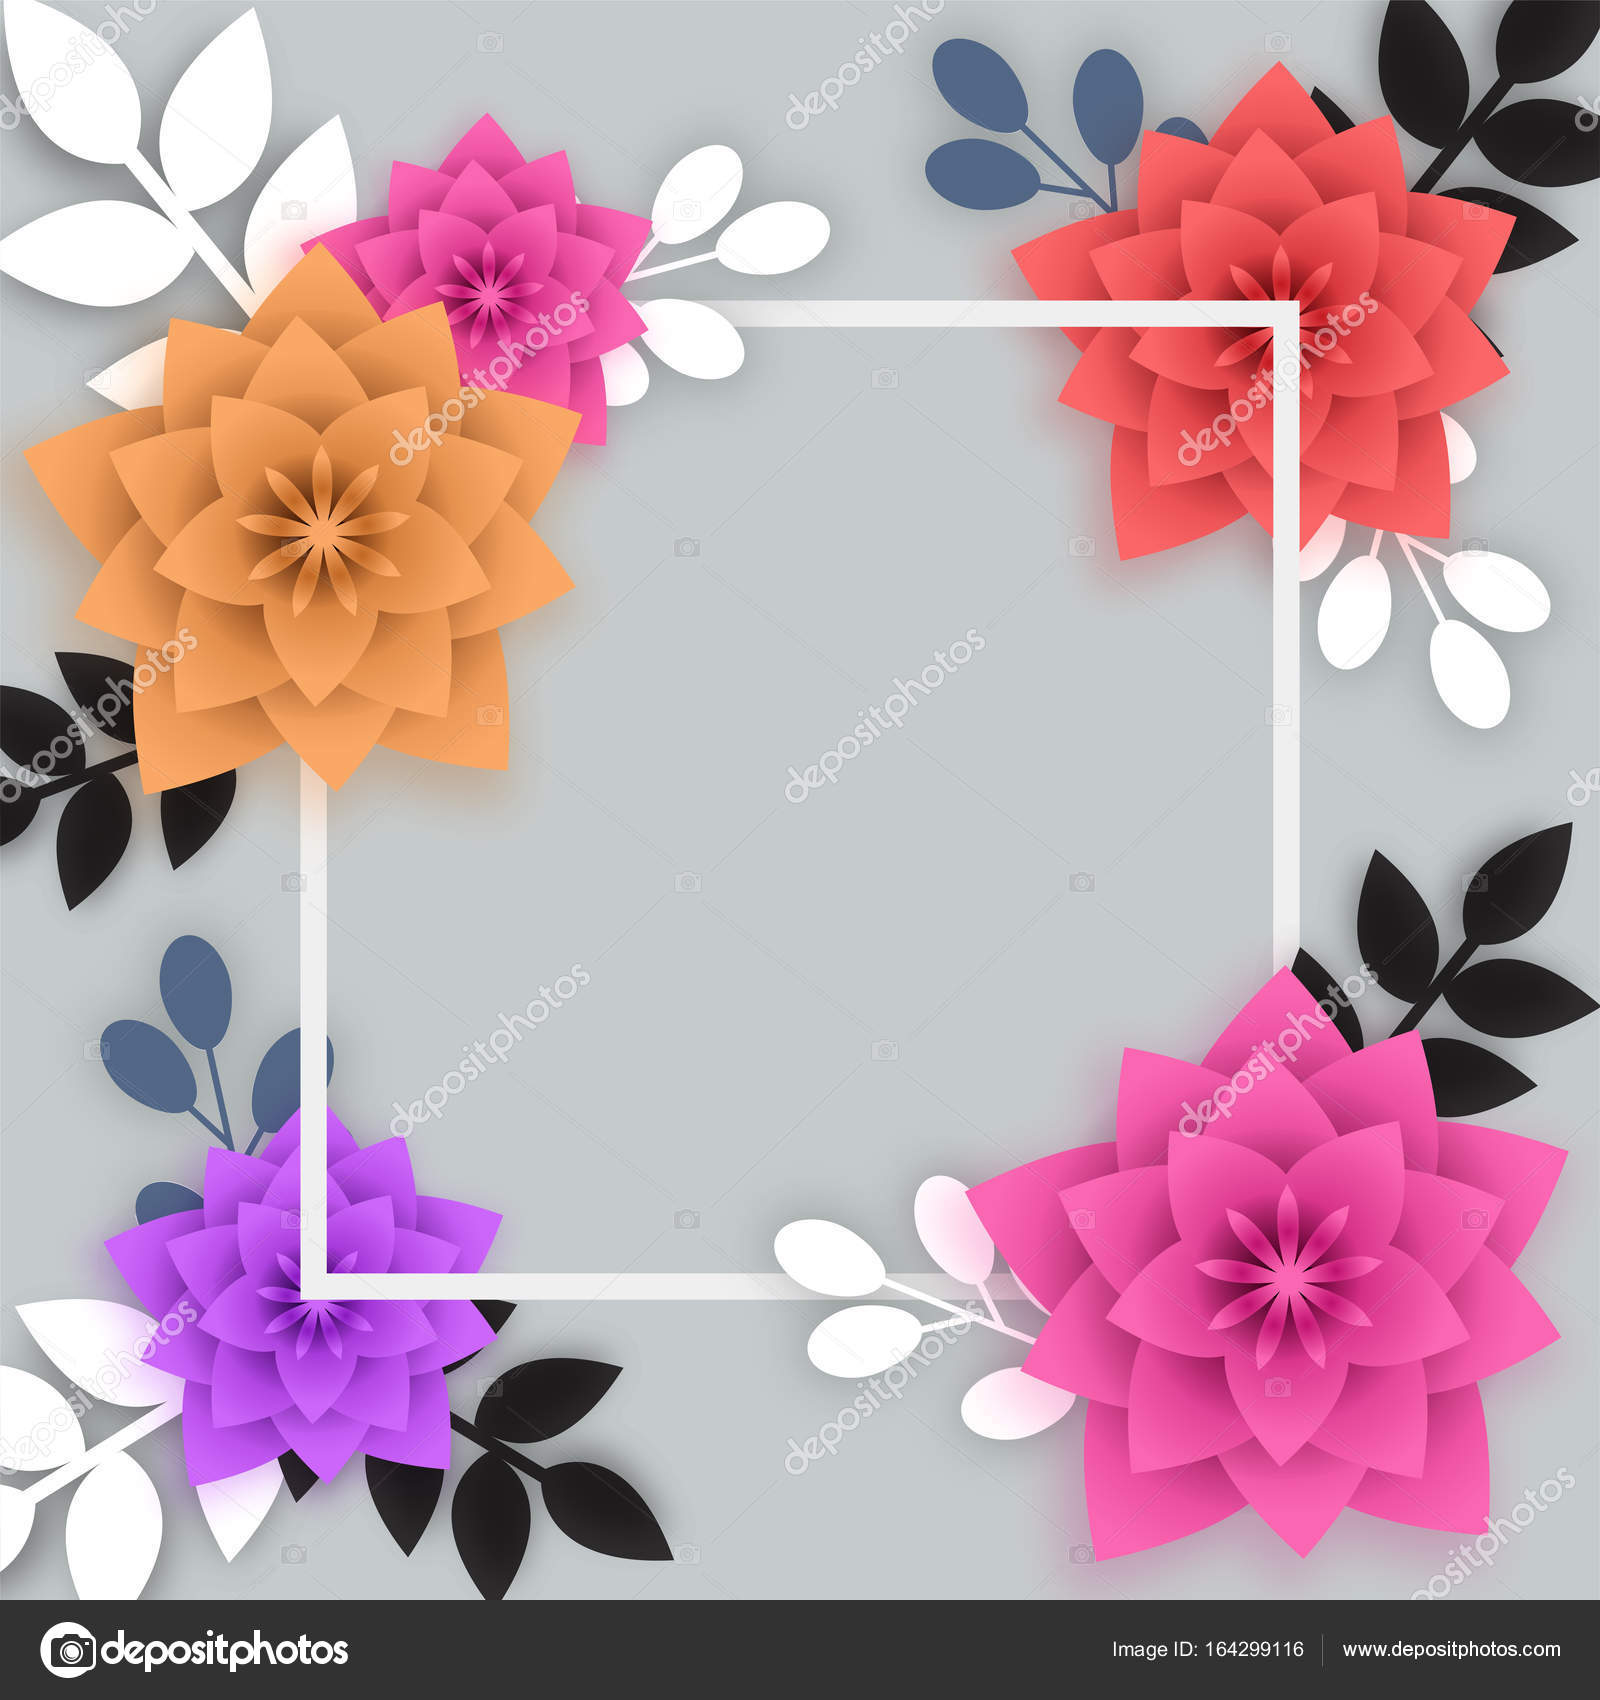 Colorful paper flowers with white square frame stock vector colorful paper flowers with white square frame stock vector mightylinksfo